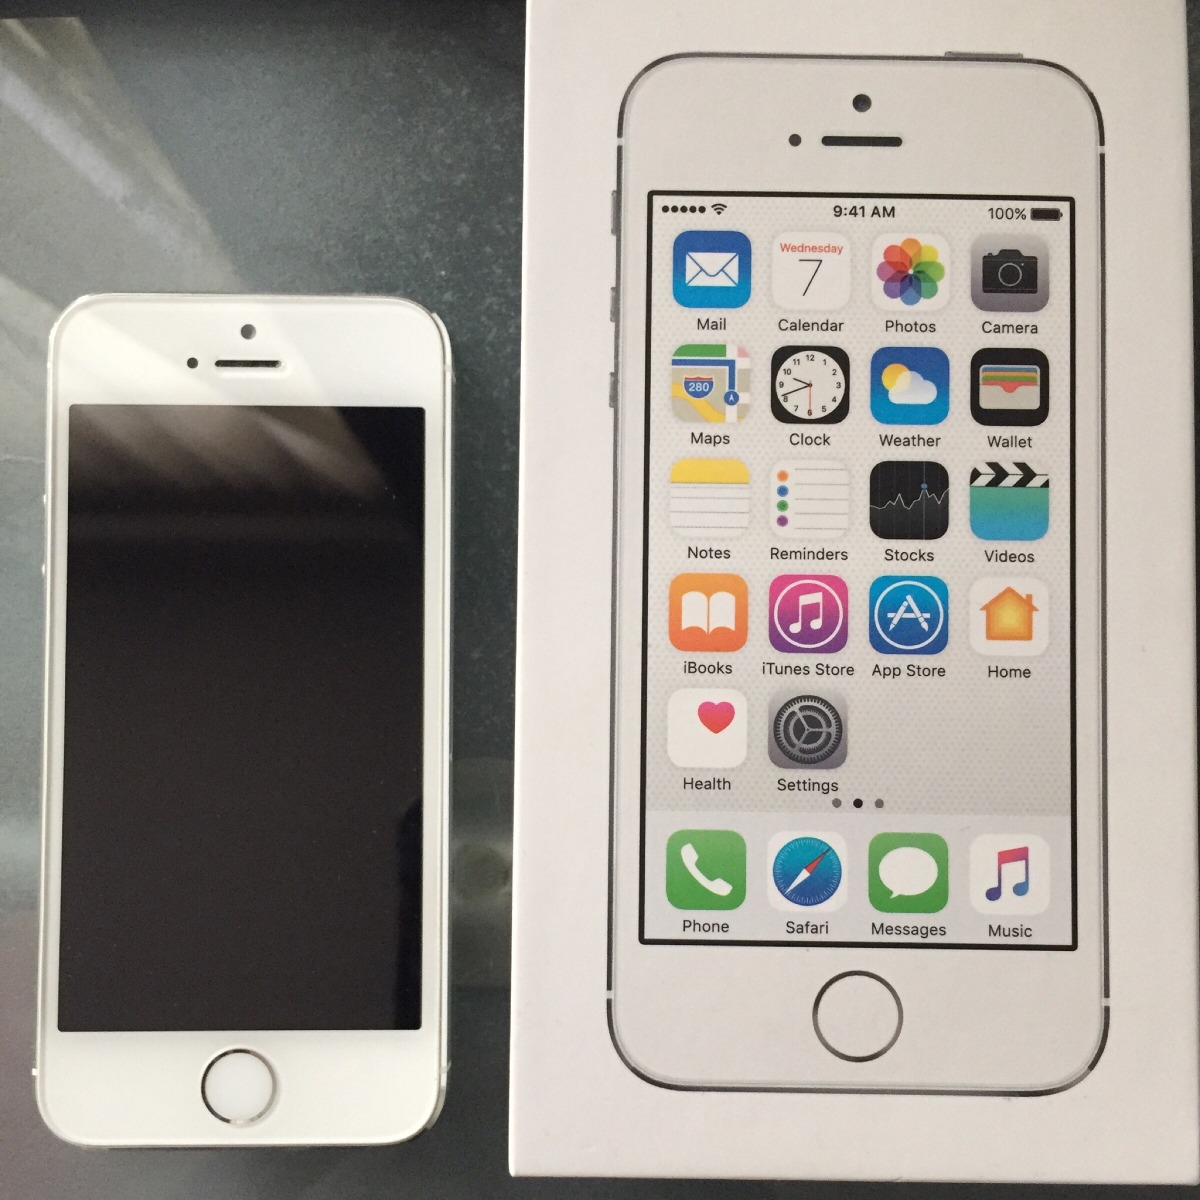 iphone 5s gb iphone 5s 16 gb 100 original 1 mes uso desbloqueado envio 11199